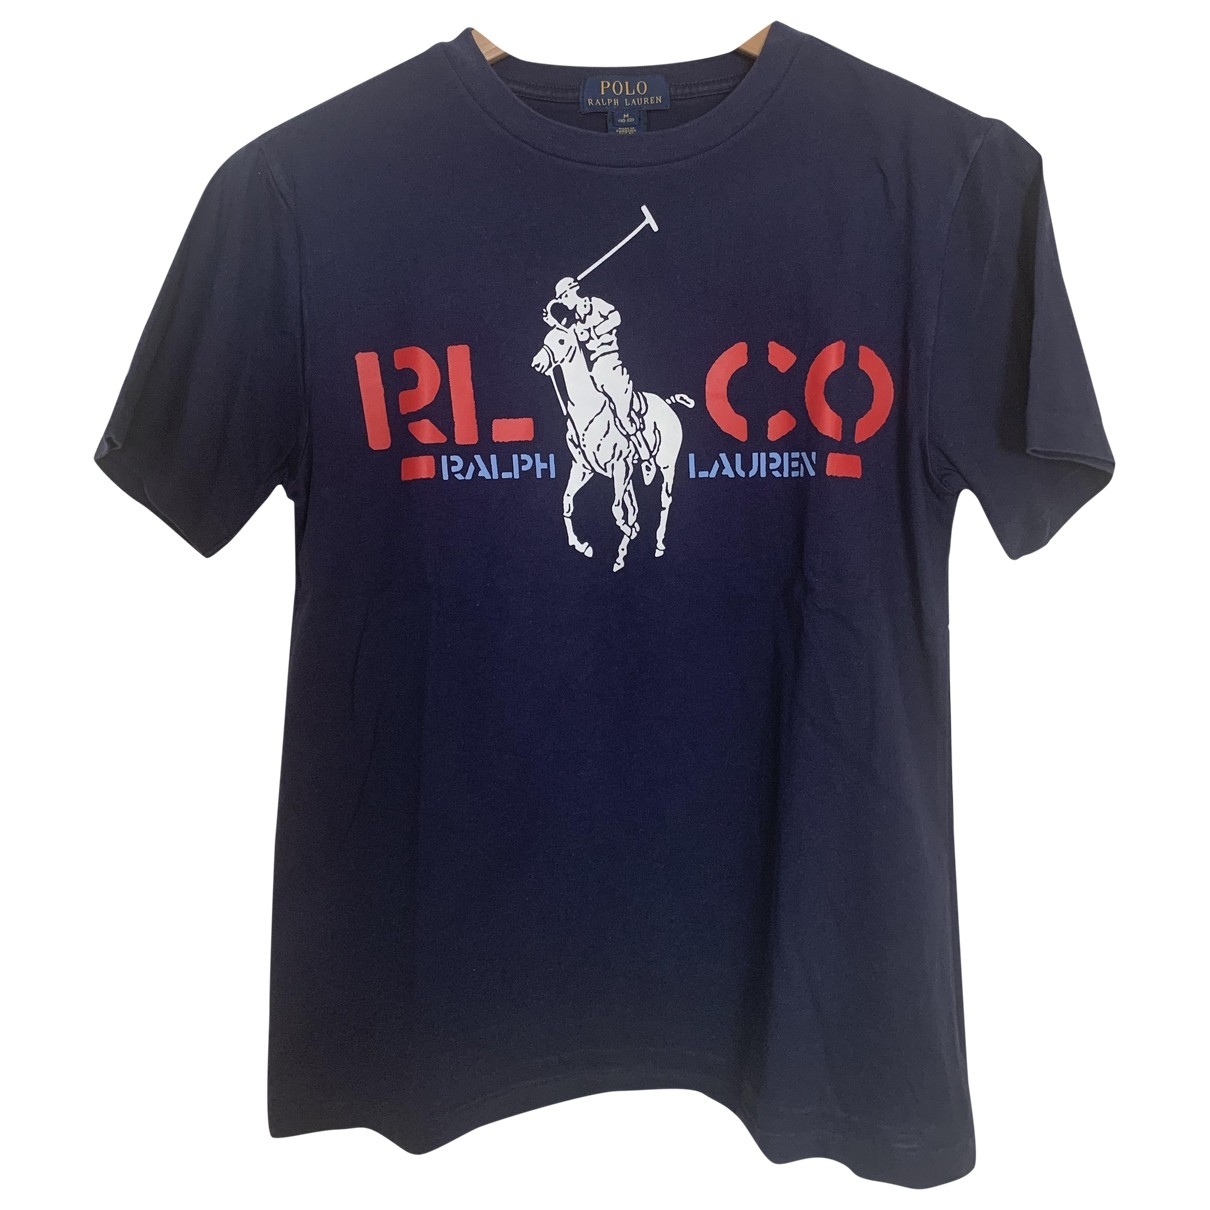 Polo Ralph Lauren \N Blue Cotton  top for Kids 12 years - XS FR